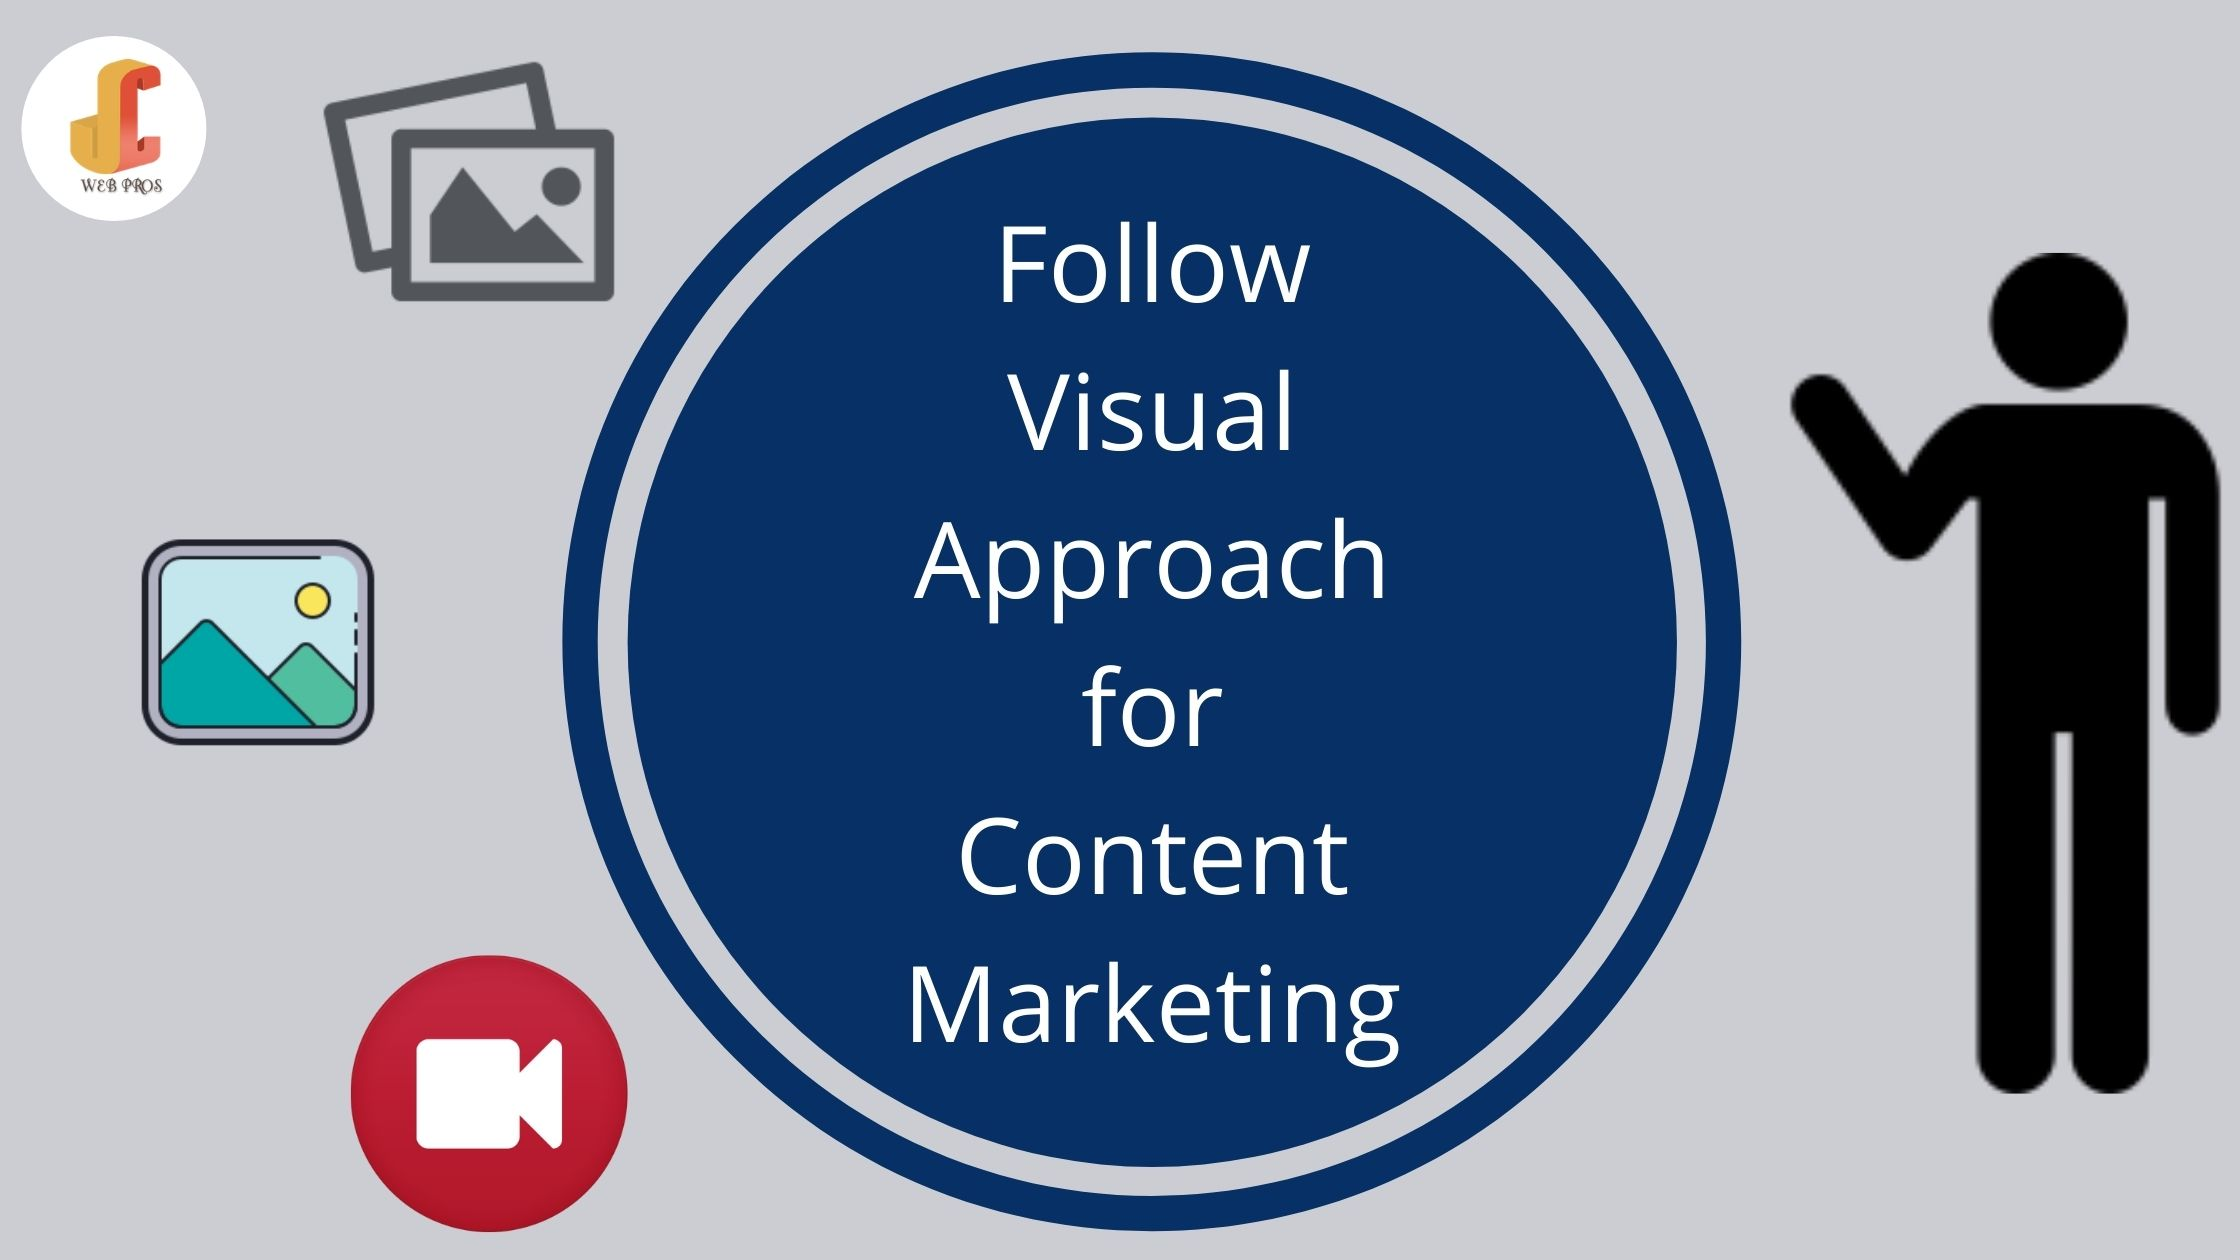 Follow Visual Approach for Content Marketing